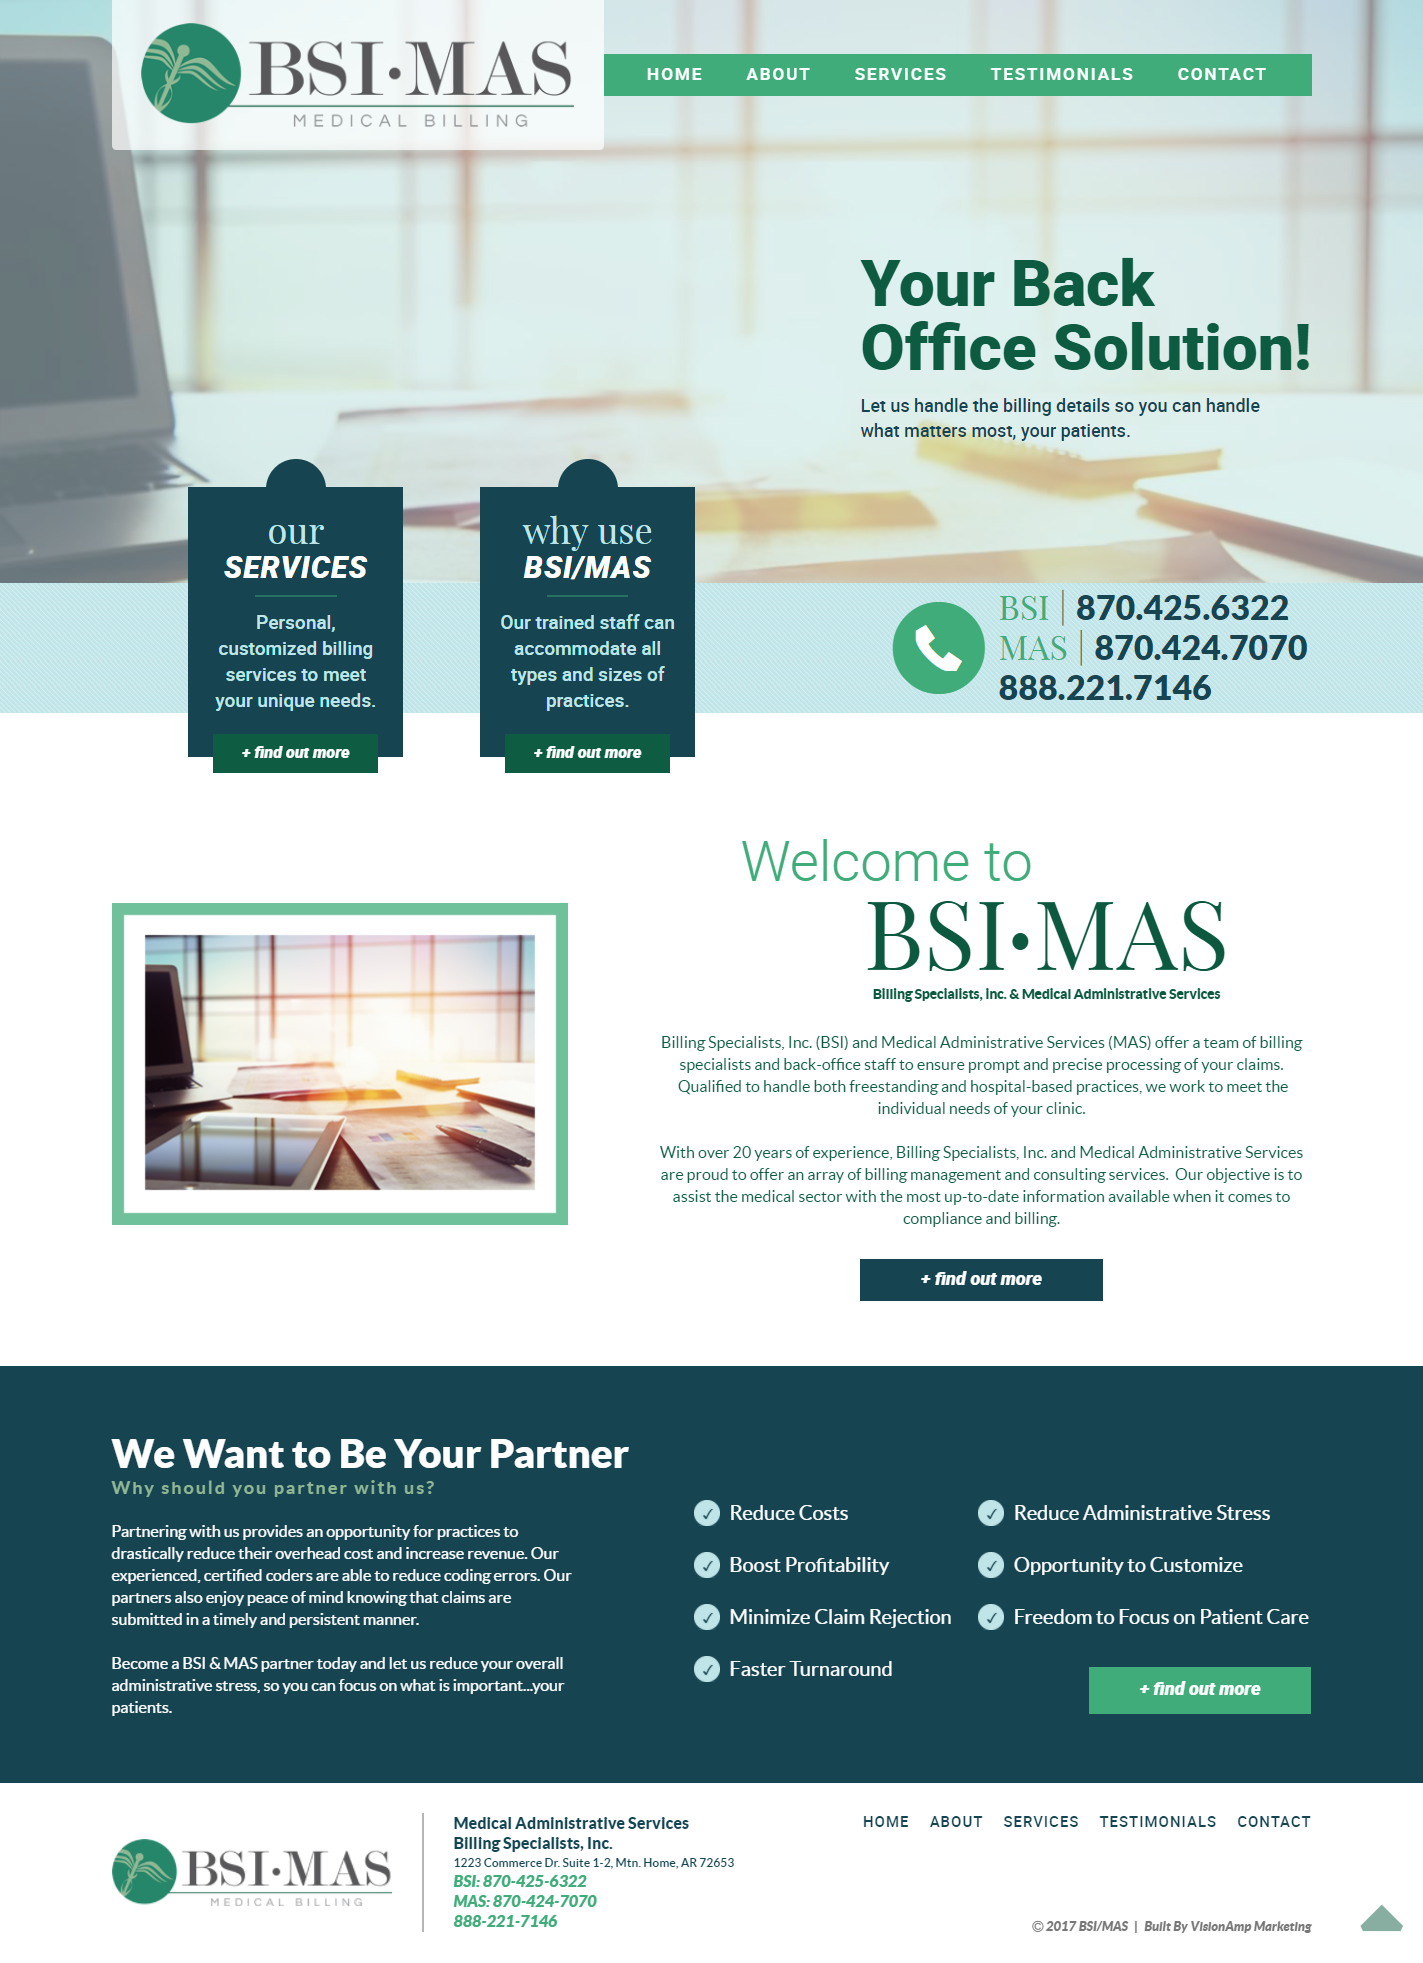 BSI MAS Billing Specialists Full Web Design Image